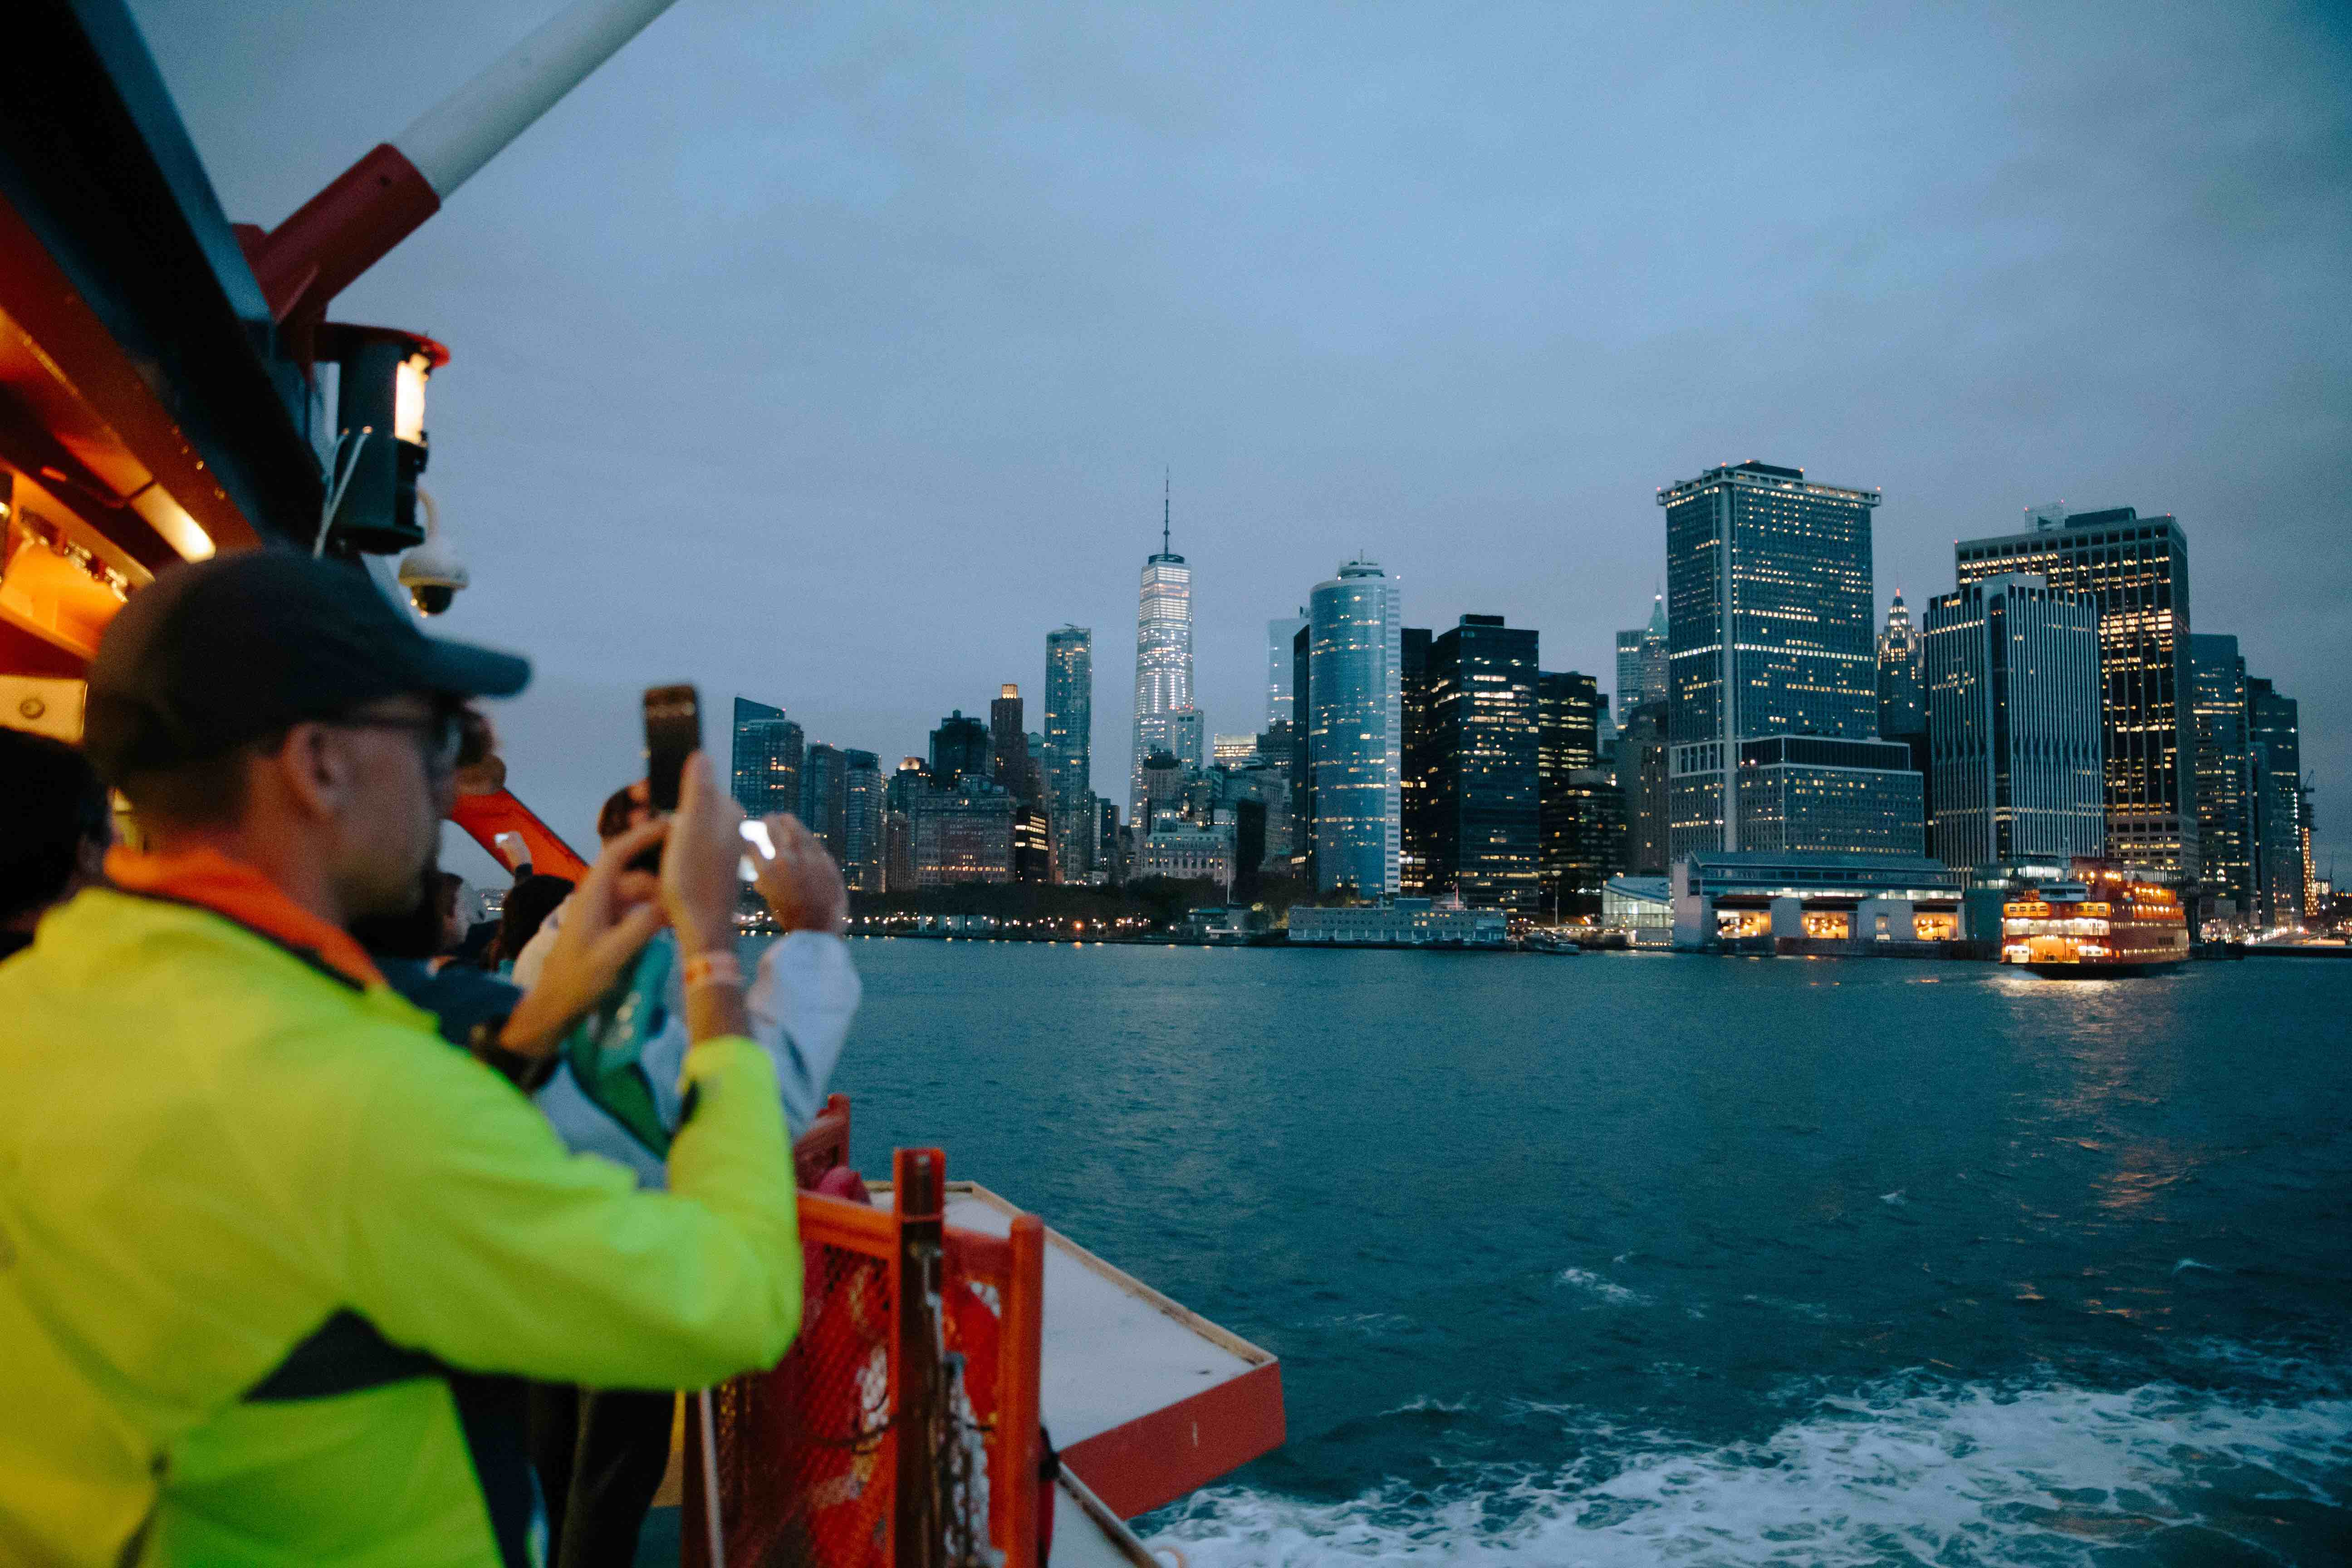 A TCS New York City Marathon runner taking a photo on the Staten Island Ferry, with the Lower Manhattan skyline in the background